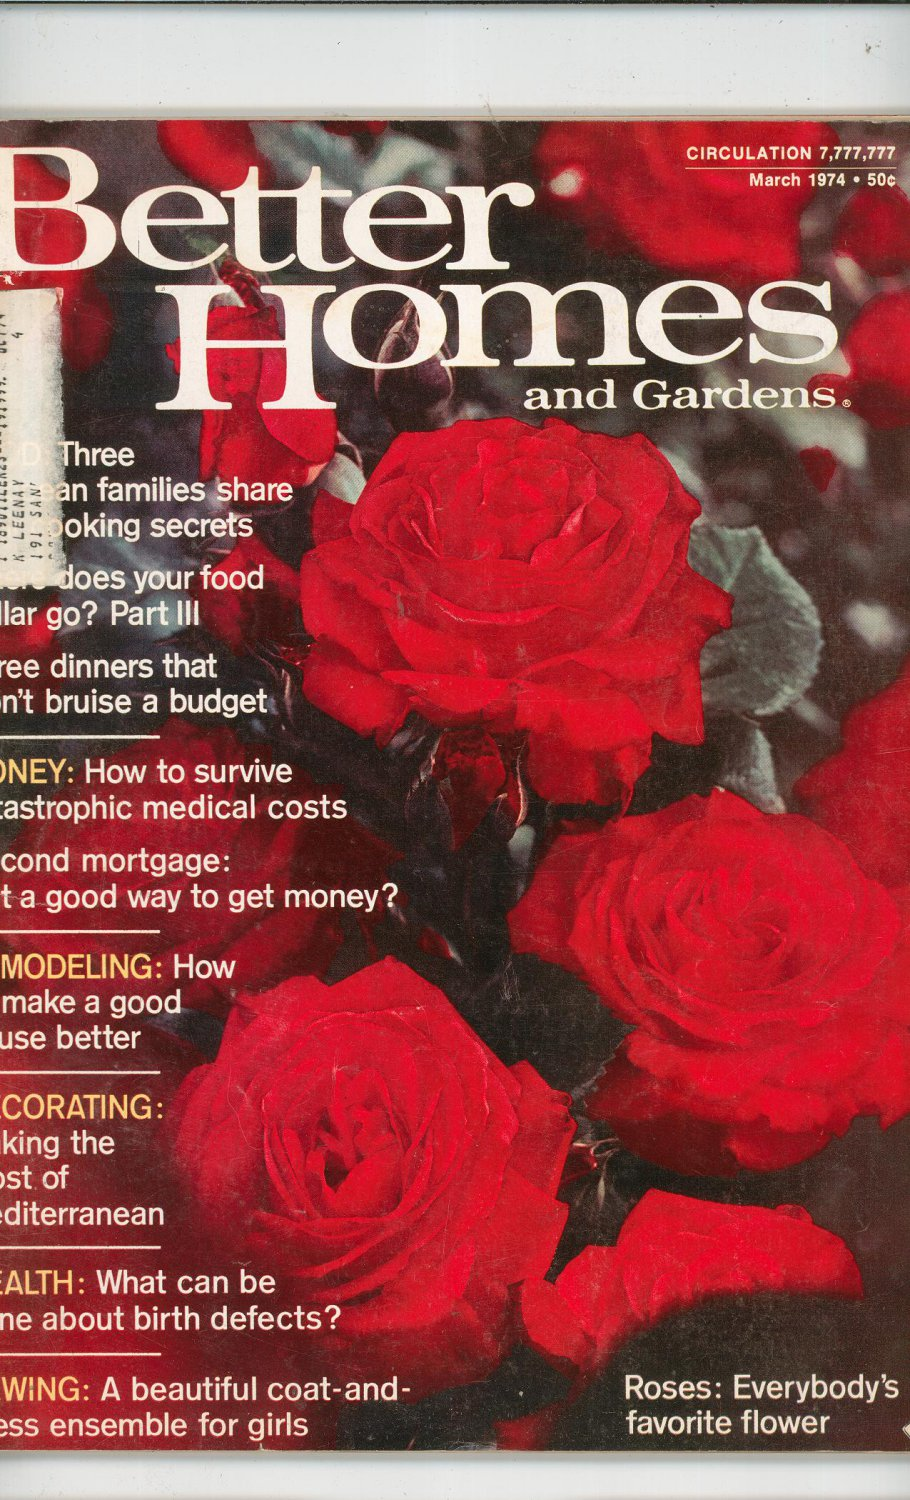 Better homes and gardens magazine march 1974 back issue vintage Better homes and gardens march